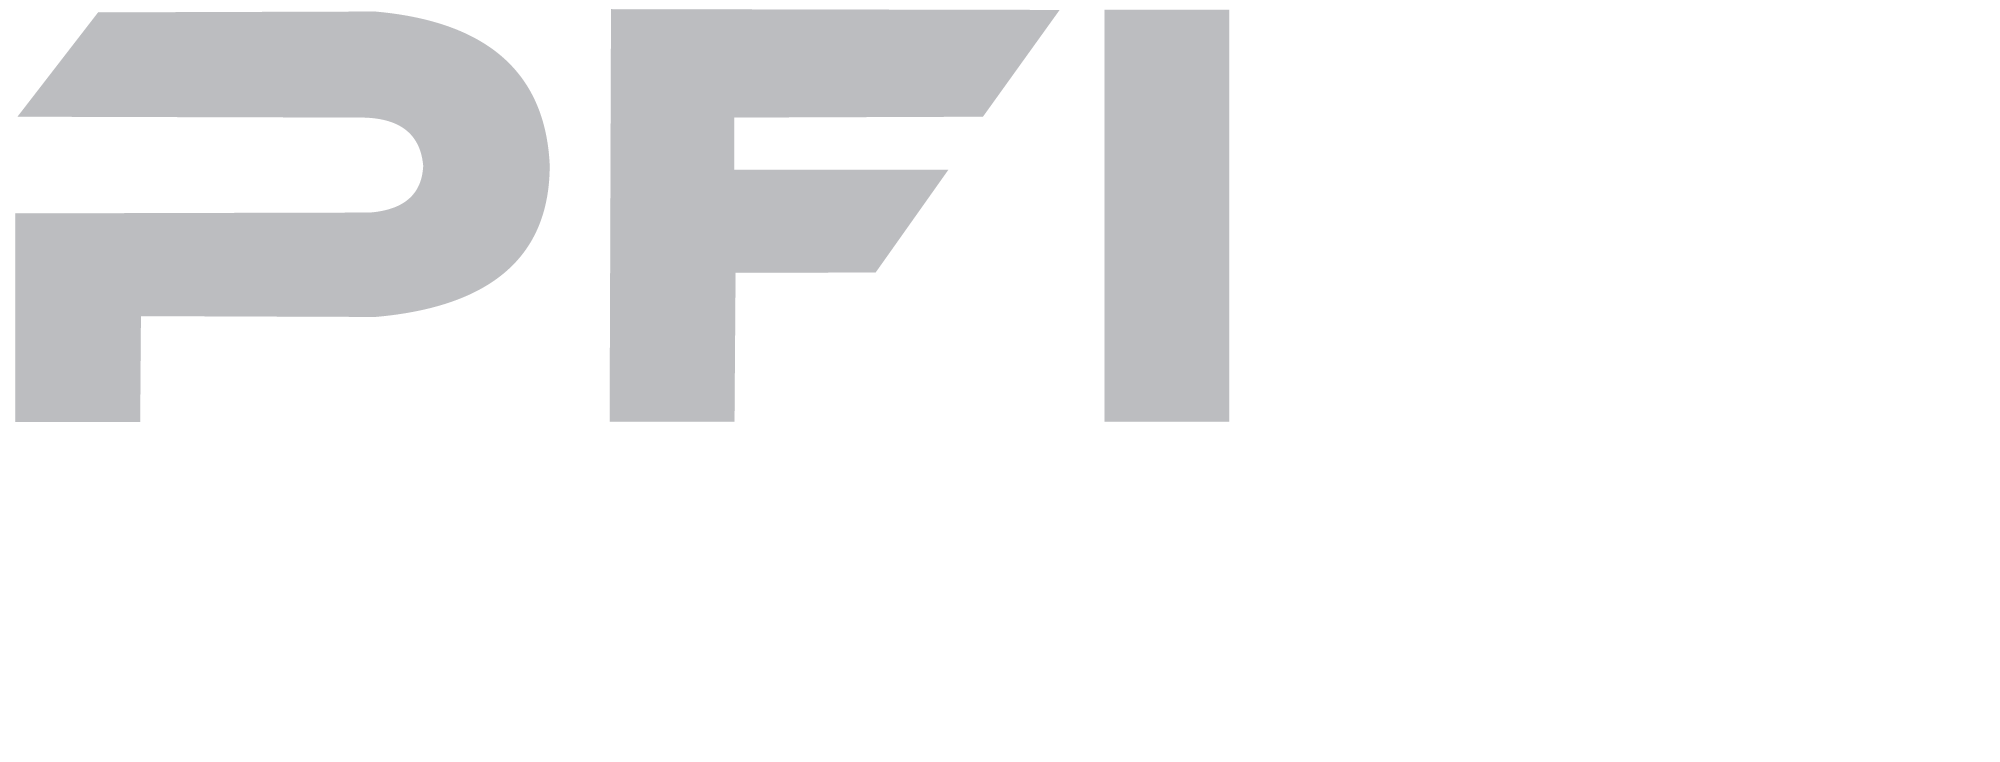 PFI Car Styling